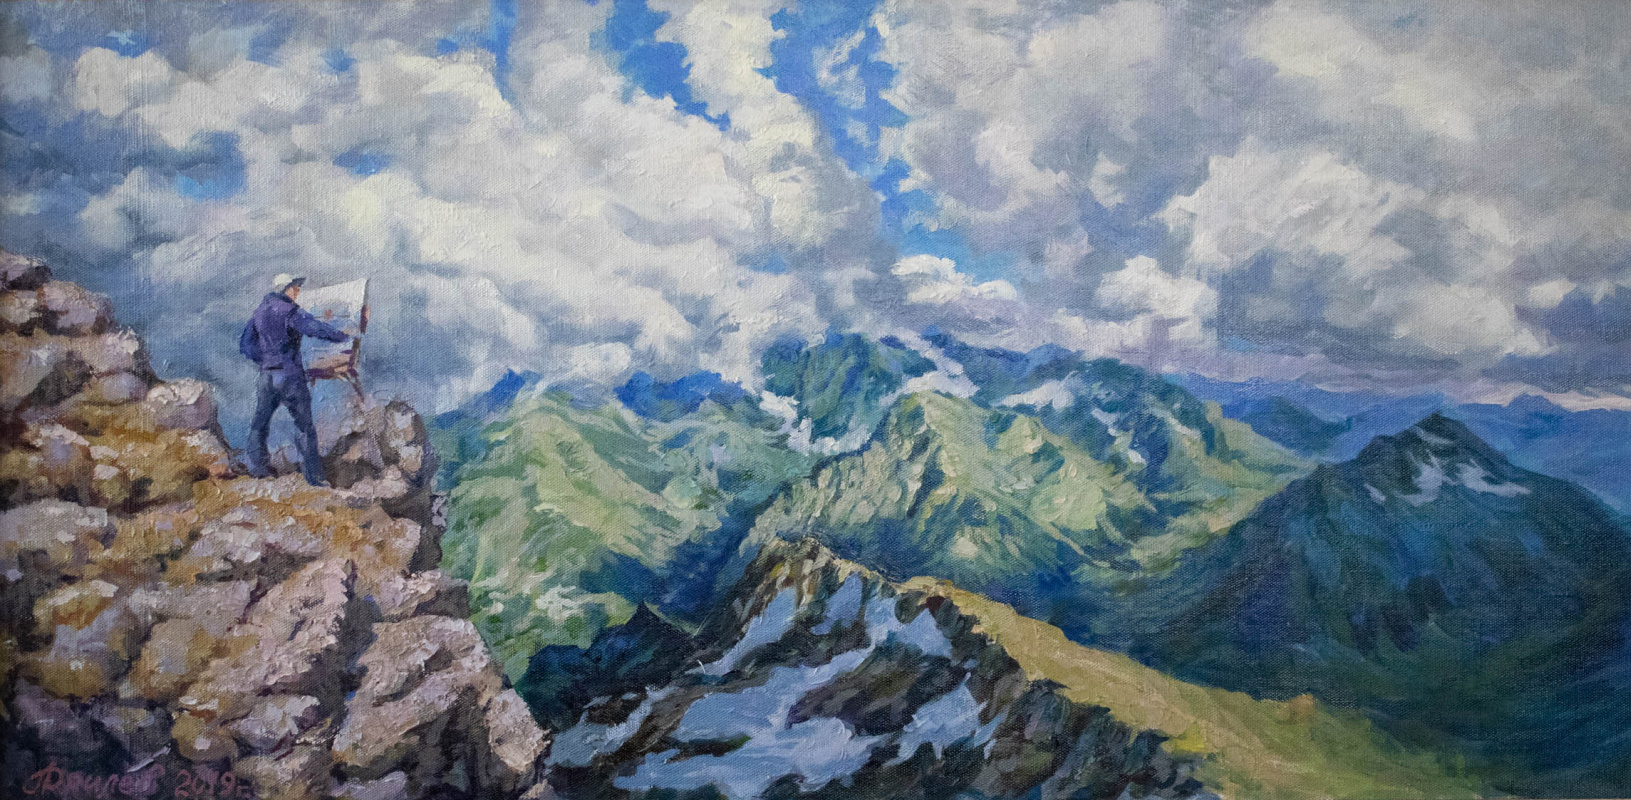 Alexey Alekseevich Drilev. Only mountains can be better than mountains